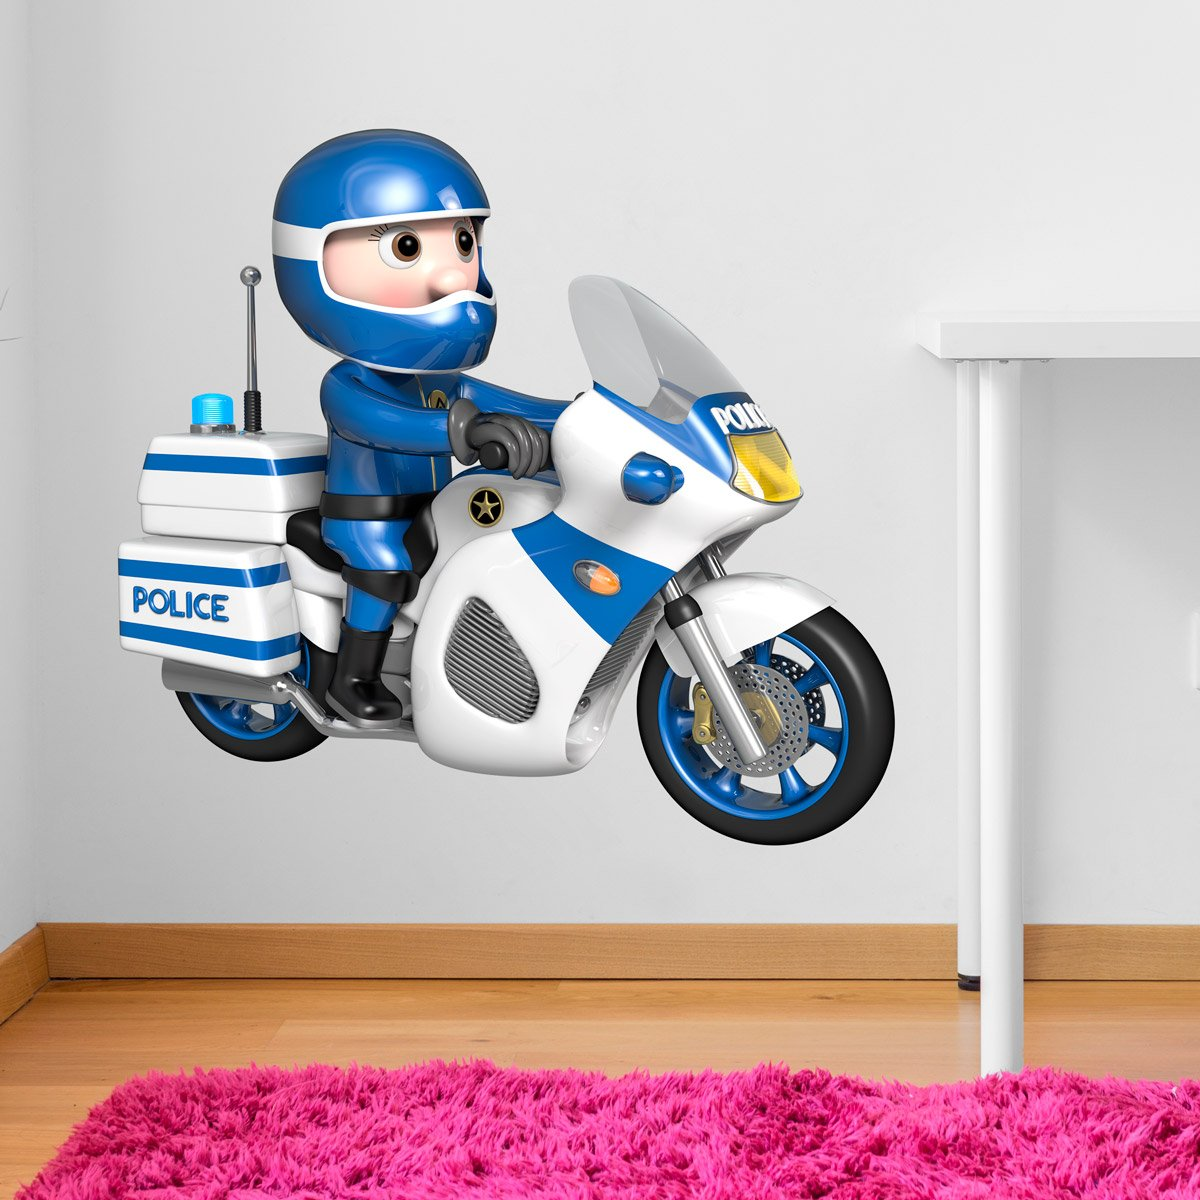 Stickers for Kids: Motorcycle Police